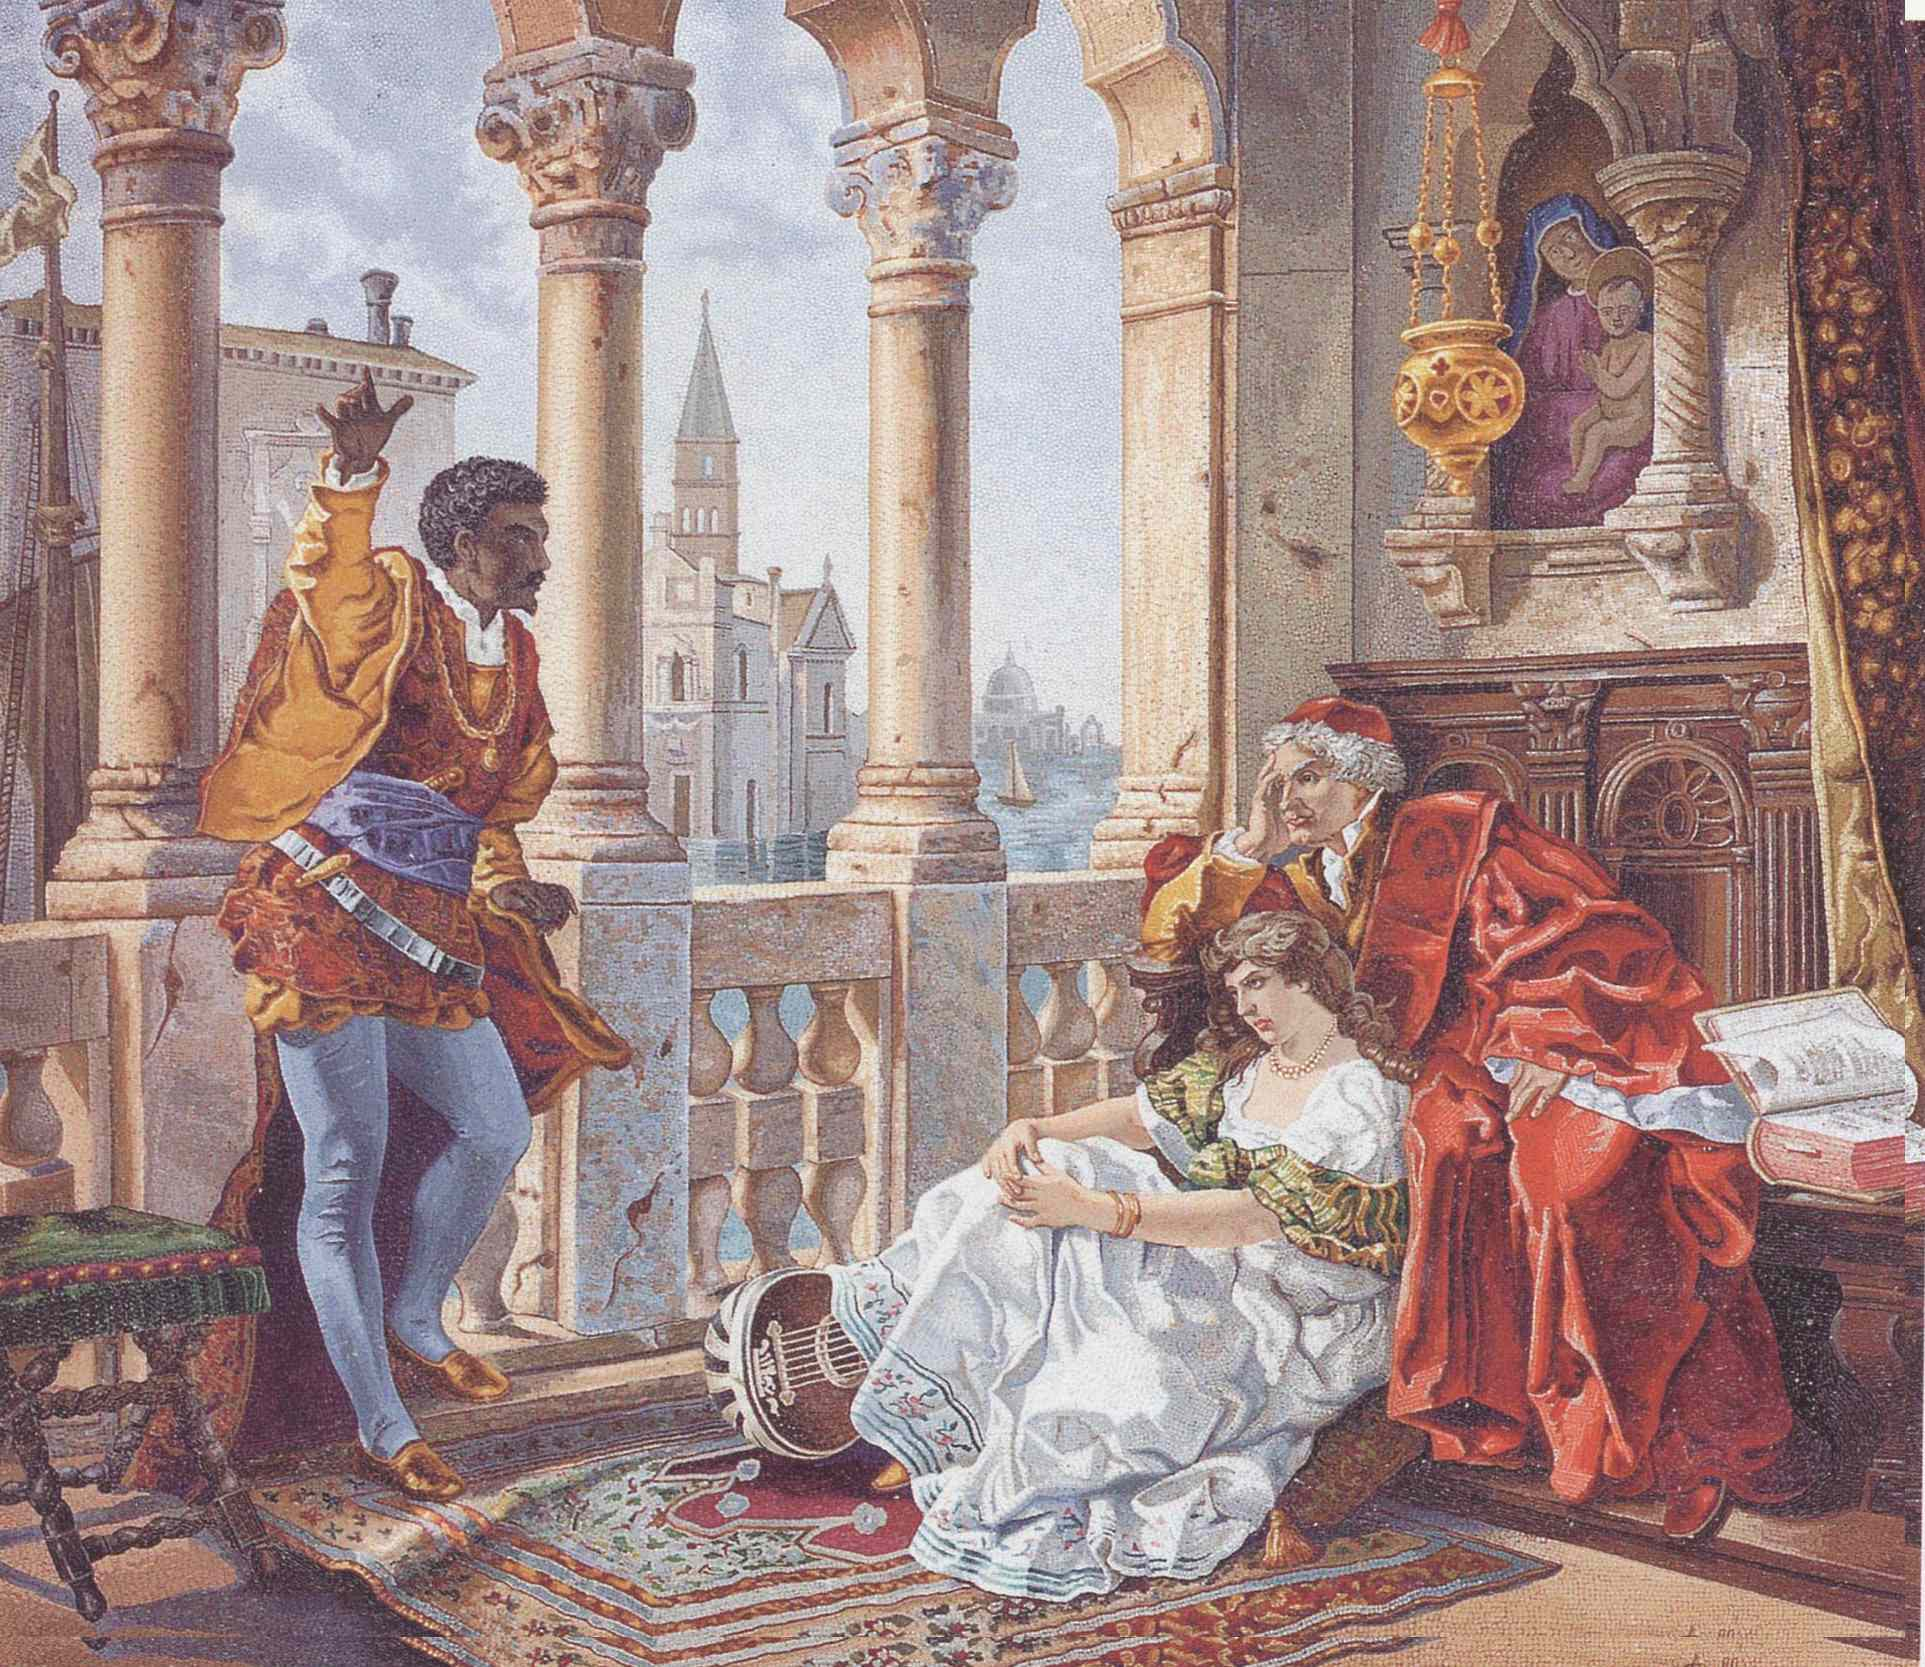 othello by shakespeare critical response Home → sparknotes → shakespeare study guides → othello → study questions othello william shakespeare contents at the end of othello, desdemona seems to.